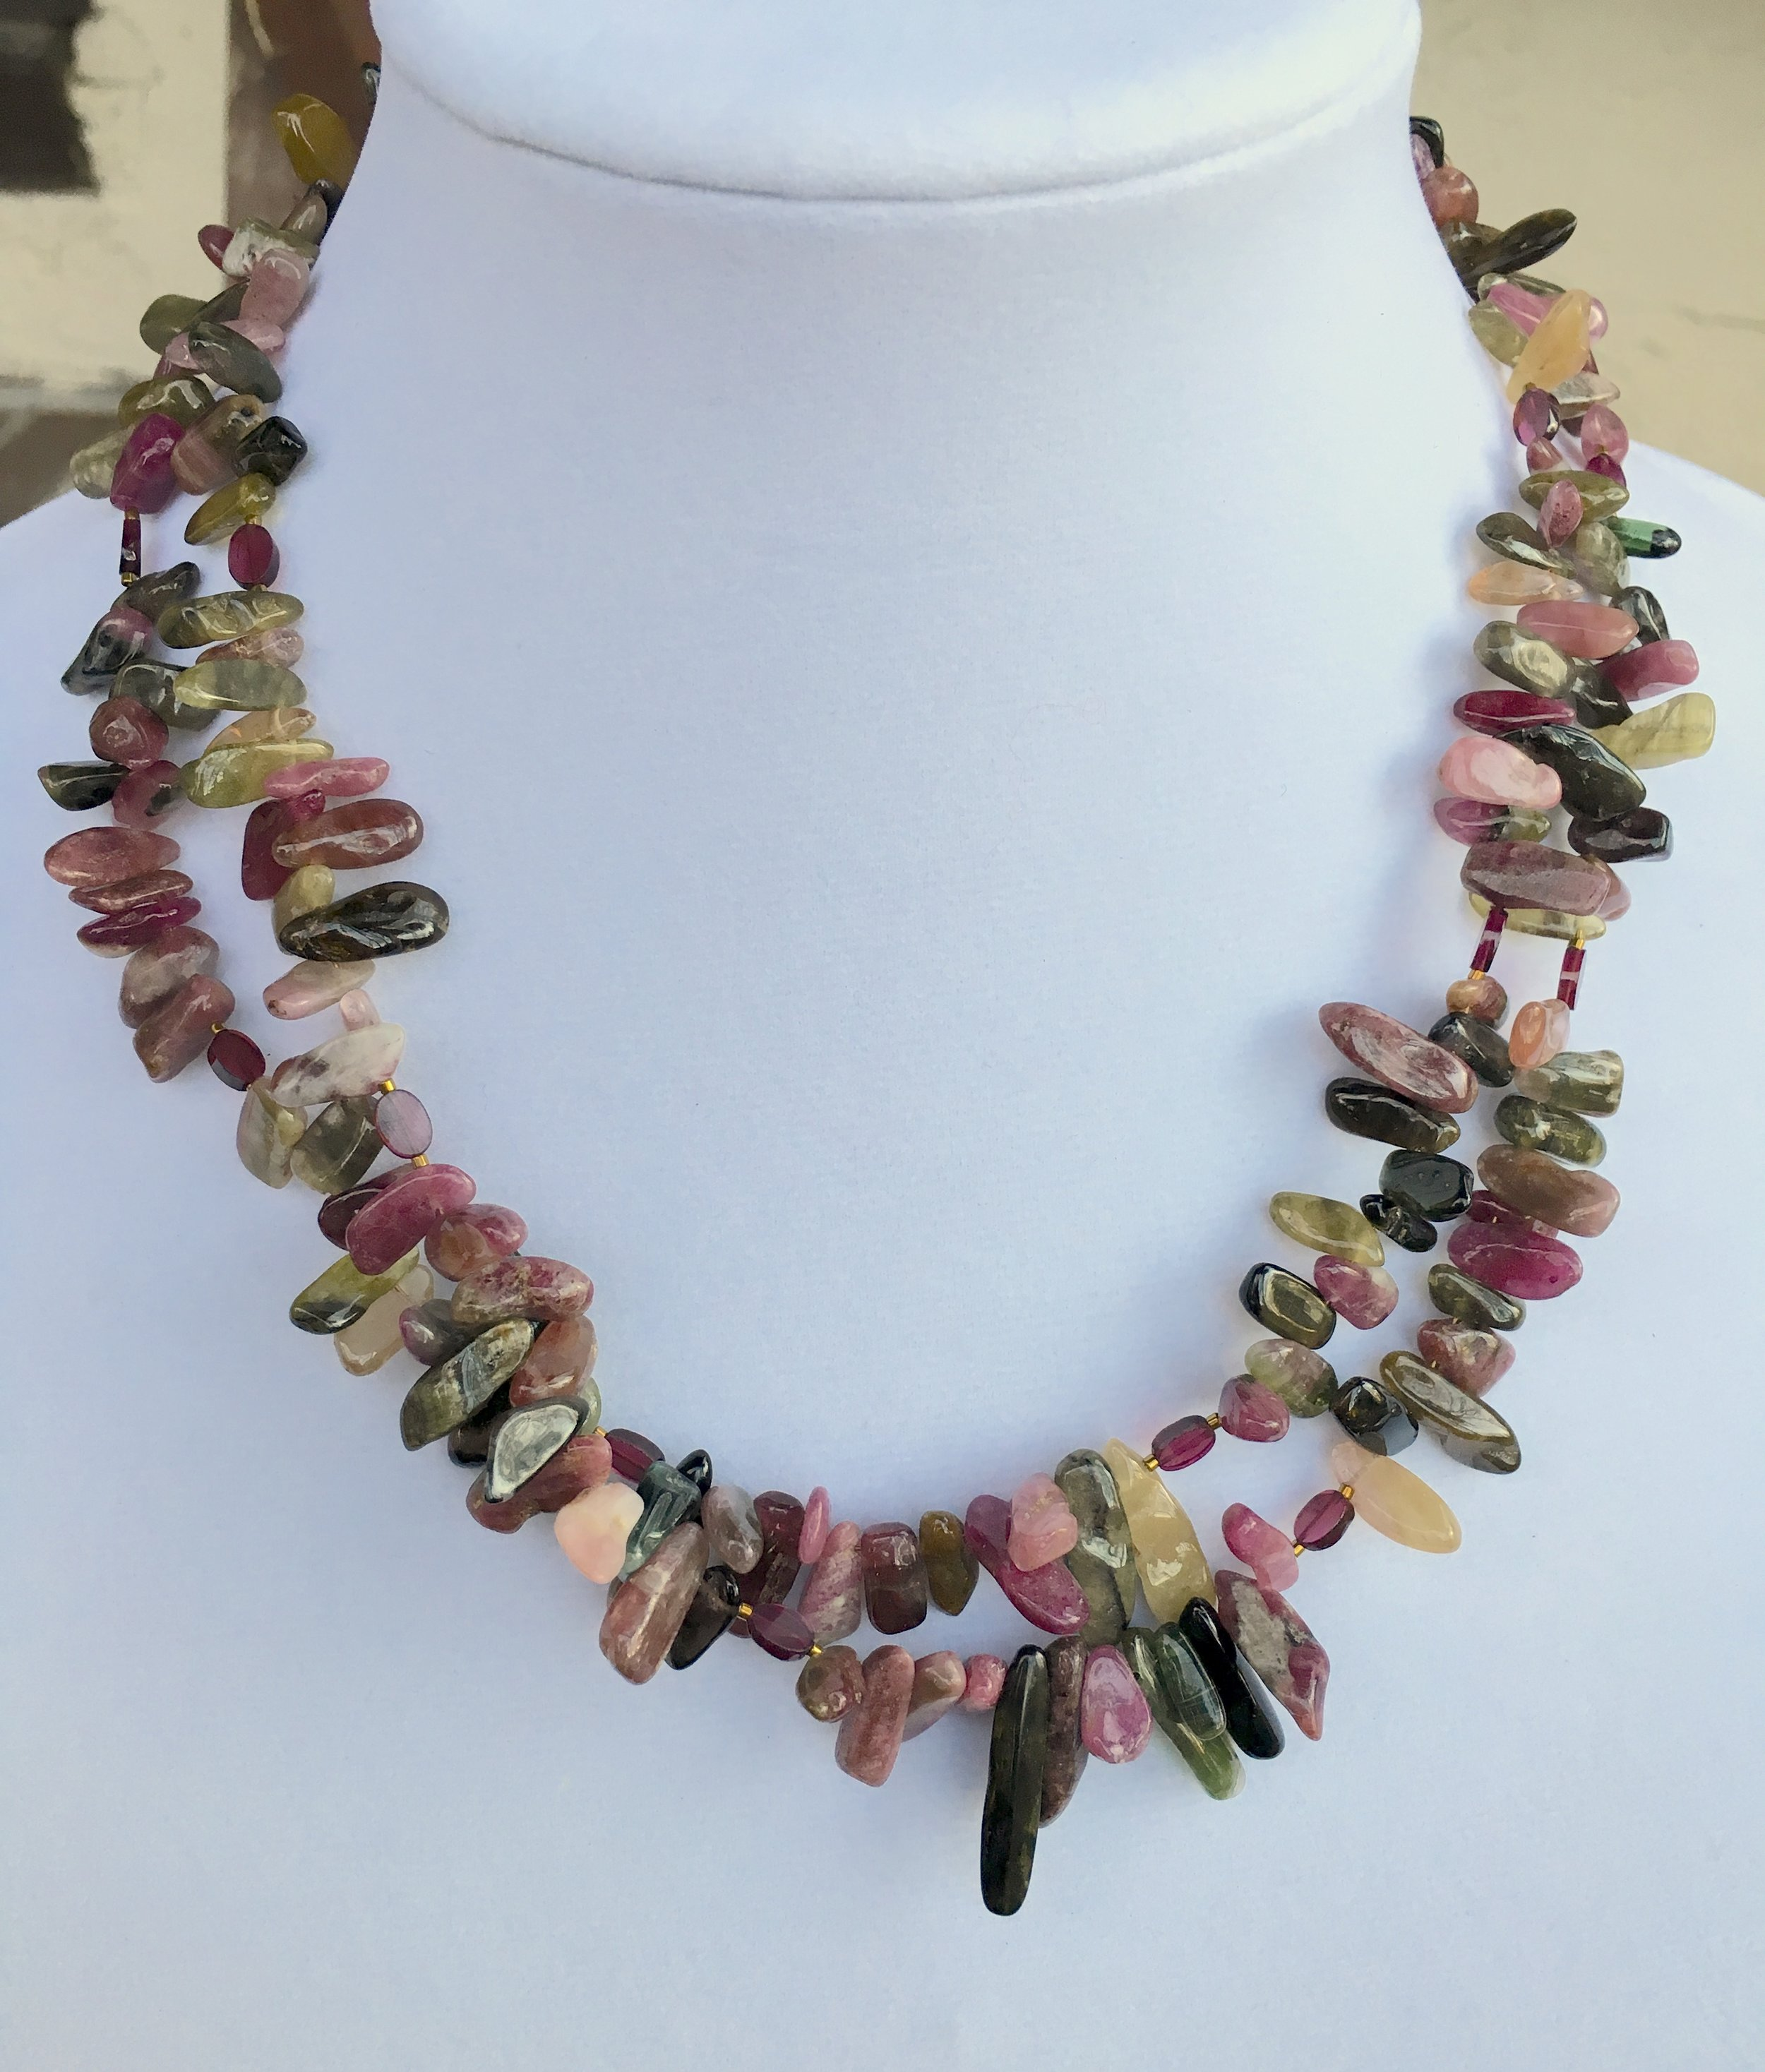 Tourmaline NECKLACe  Double strand Tourmaline sliver necklace. Approx. 20in. Gold Filled clasp. $325